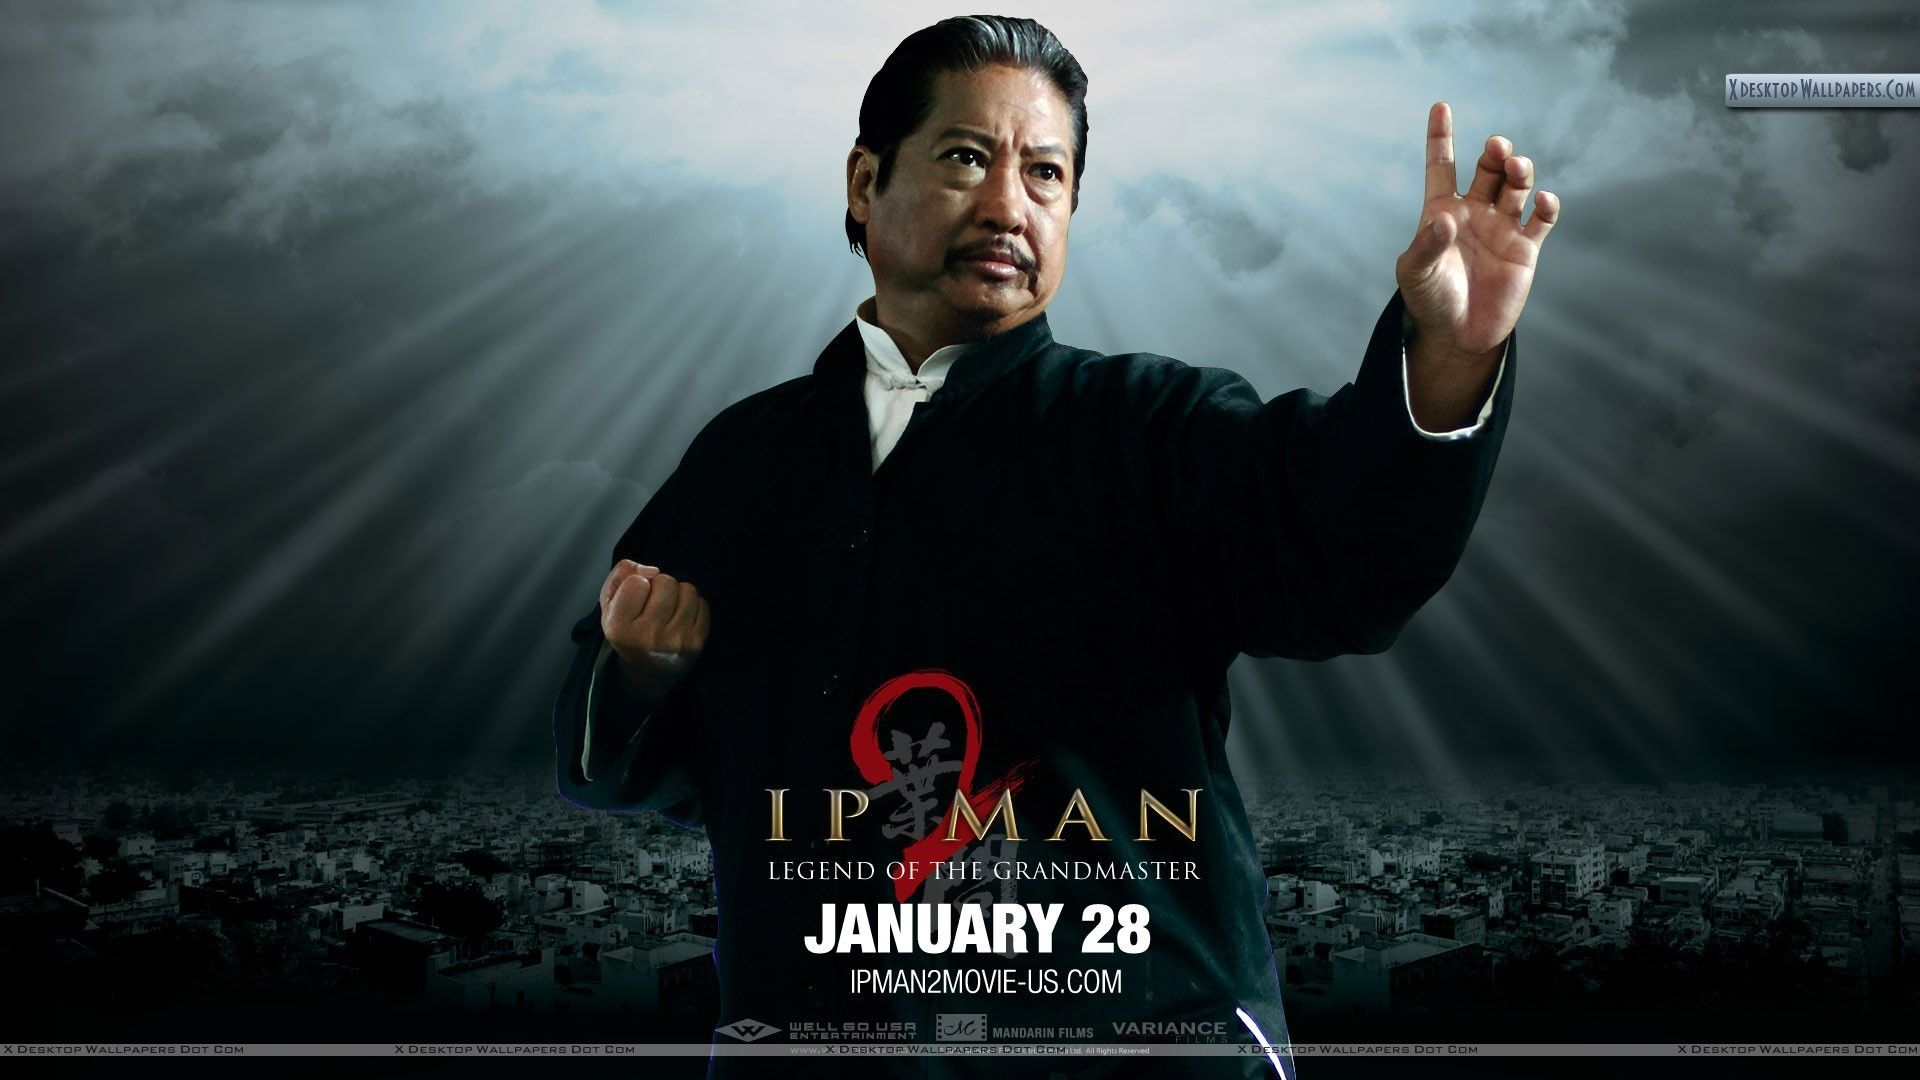 Ip Man 2 Wallpapers Photos Images In Hd Images Wallpapers